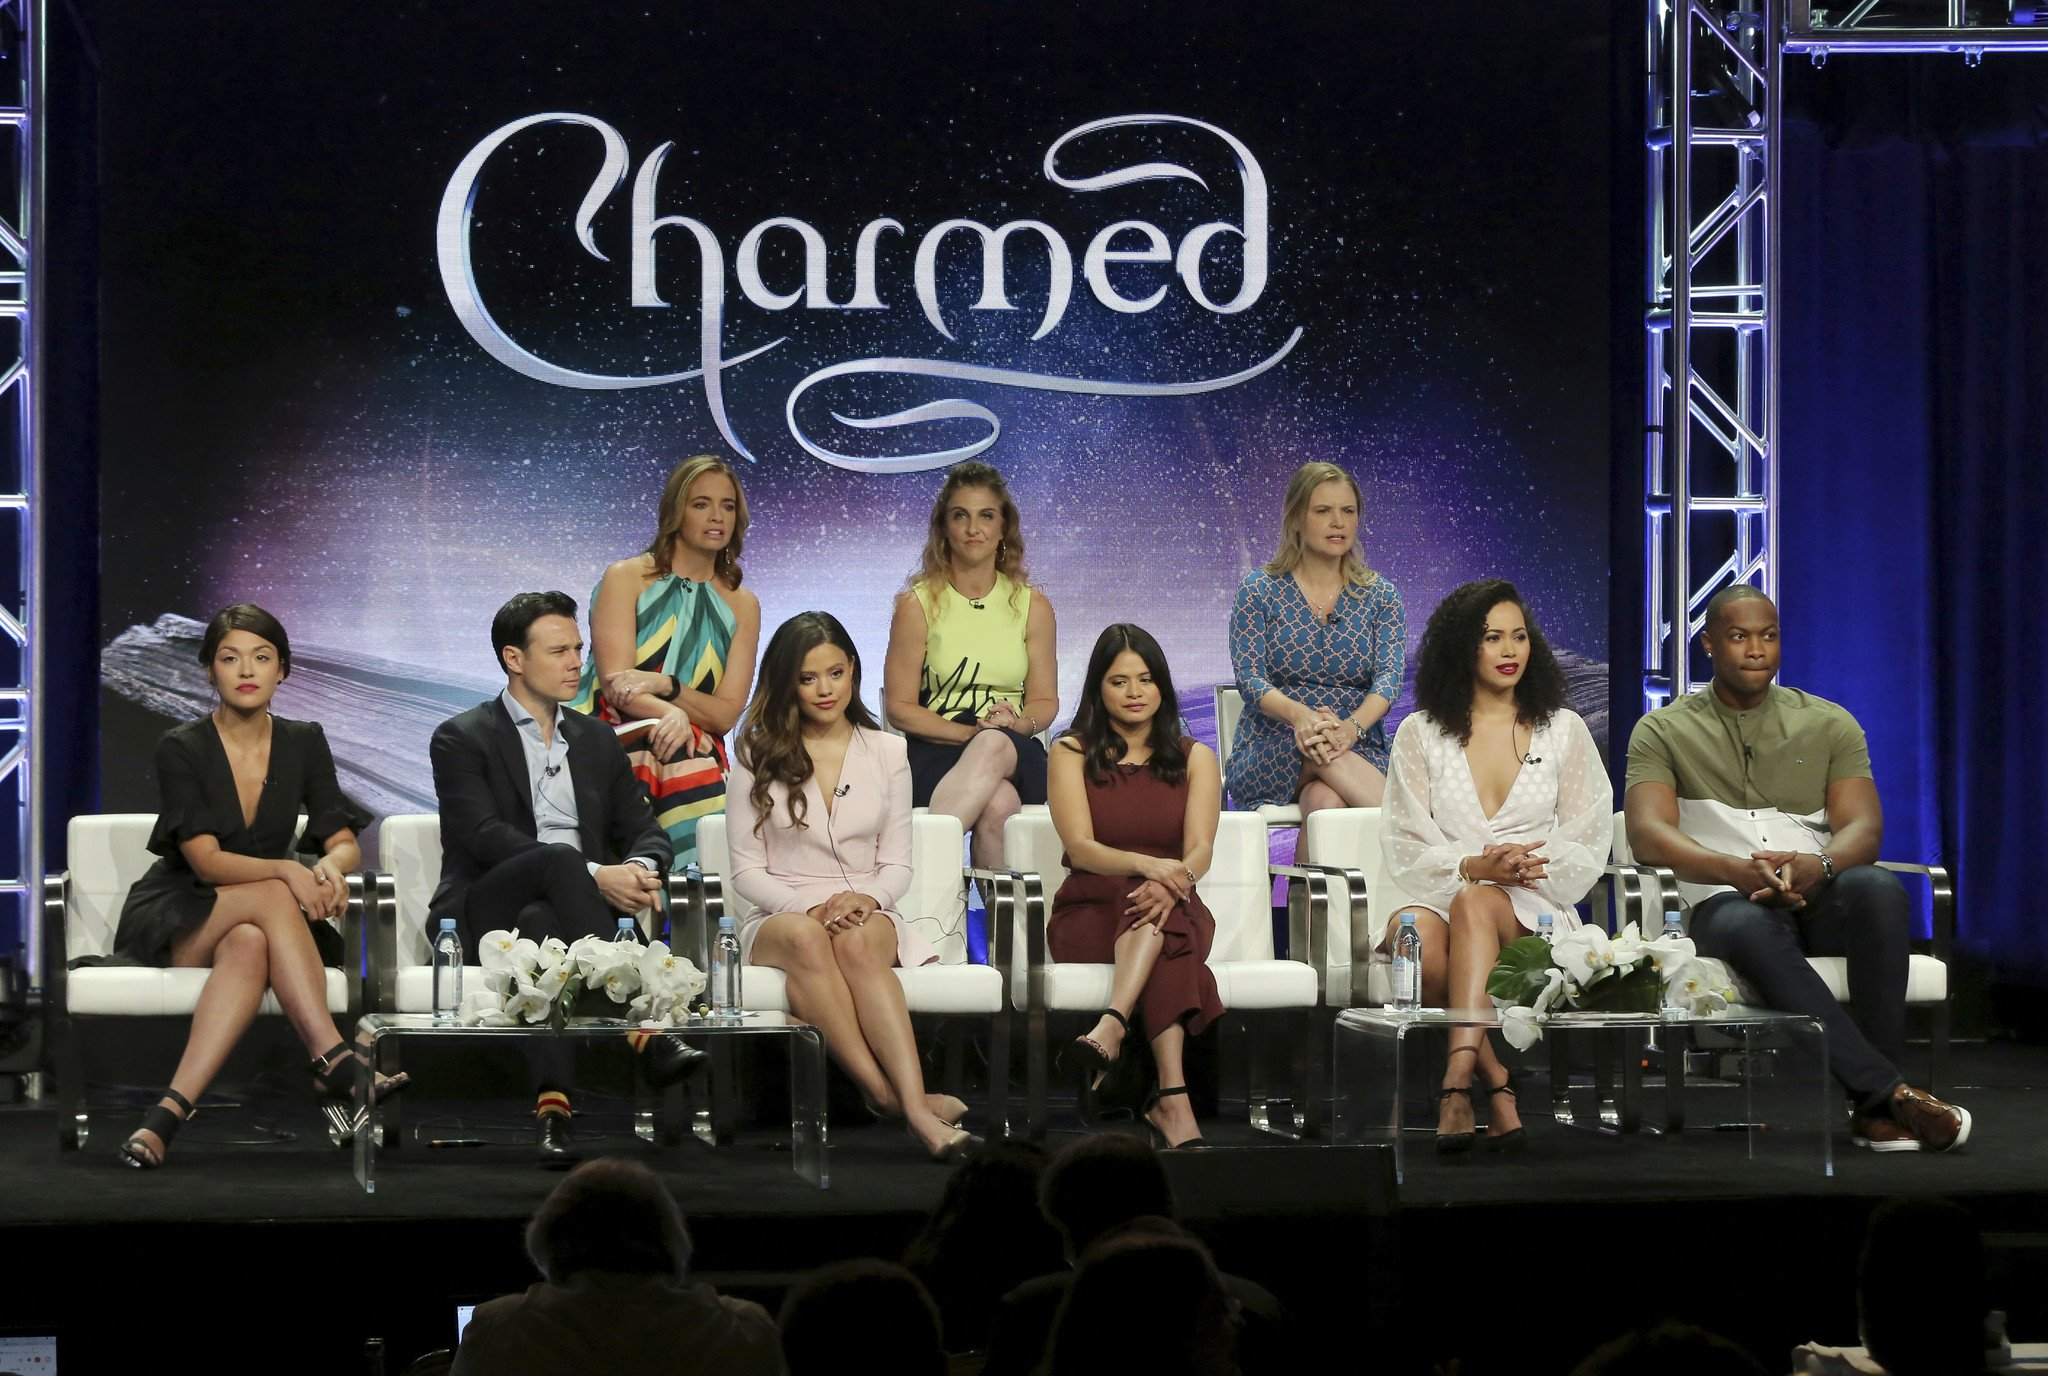 Charmed: tout savoir sur le reboot trailers, casting, affiches, synopsis